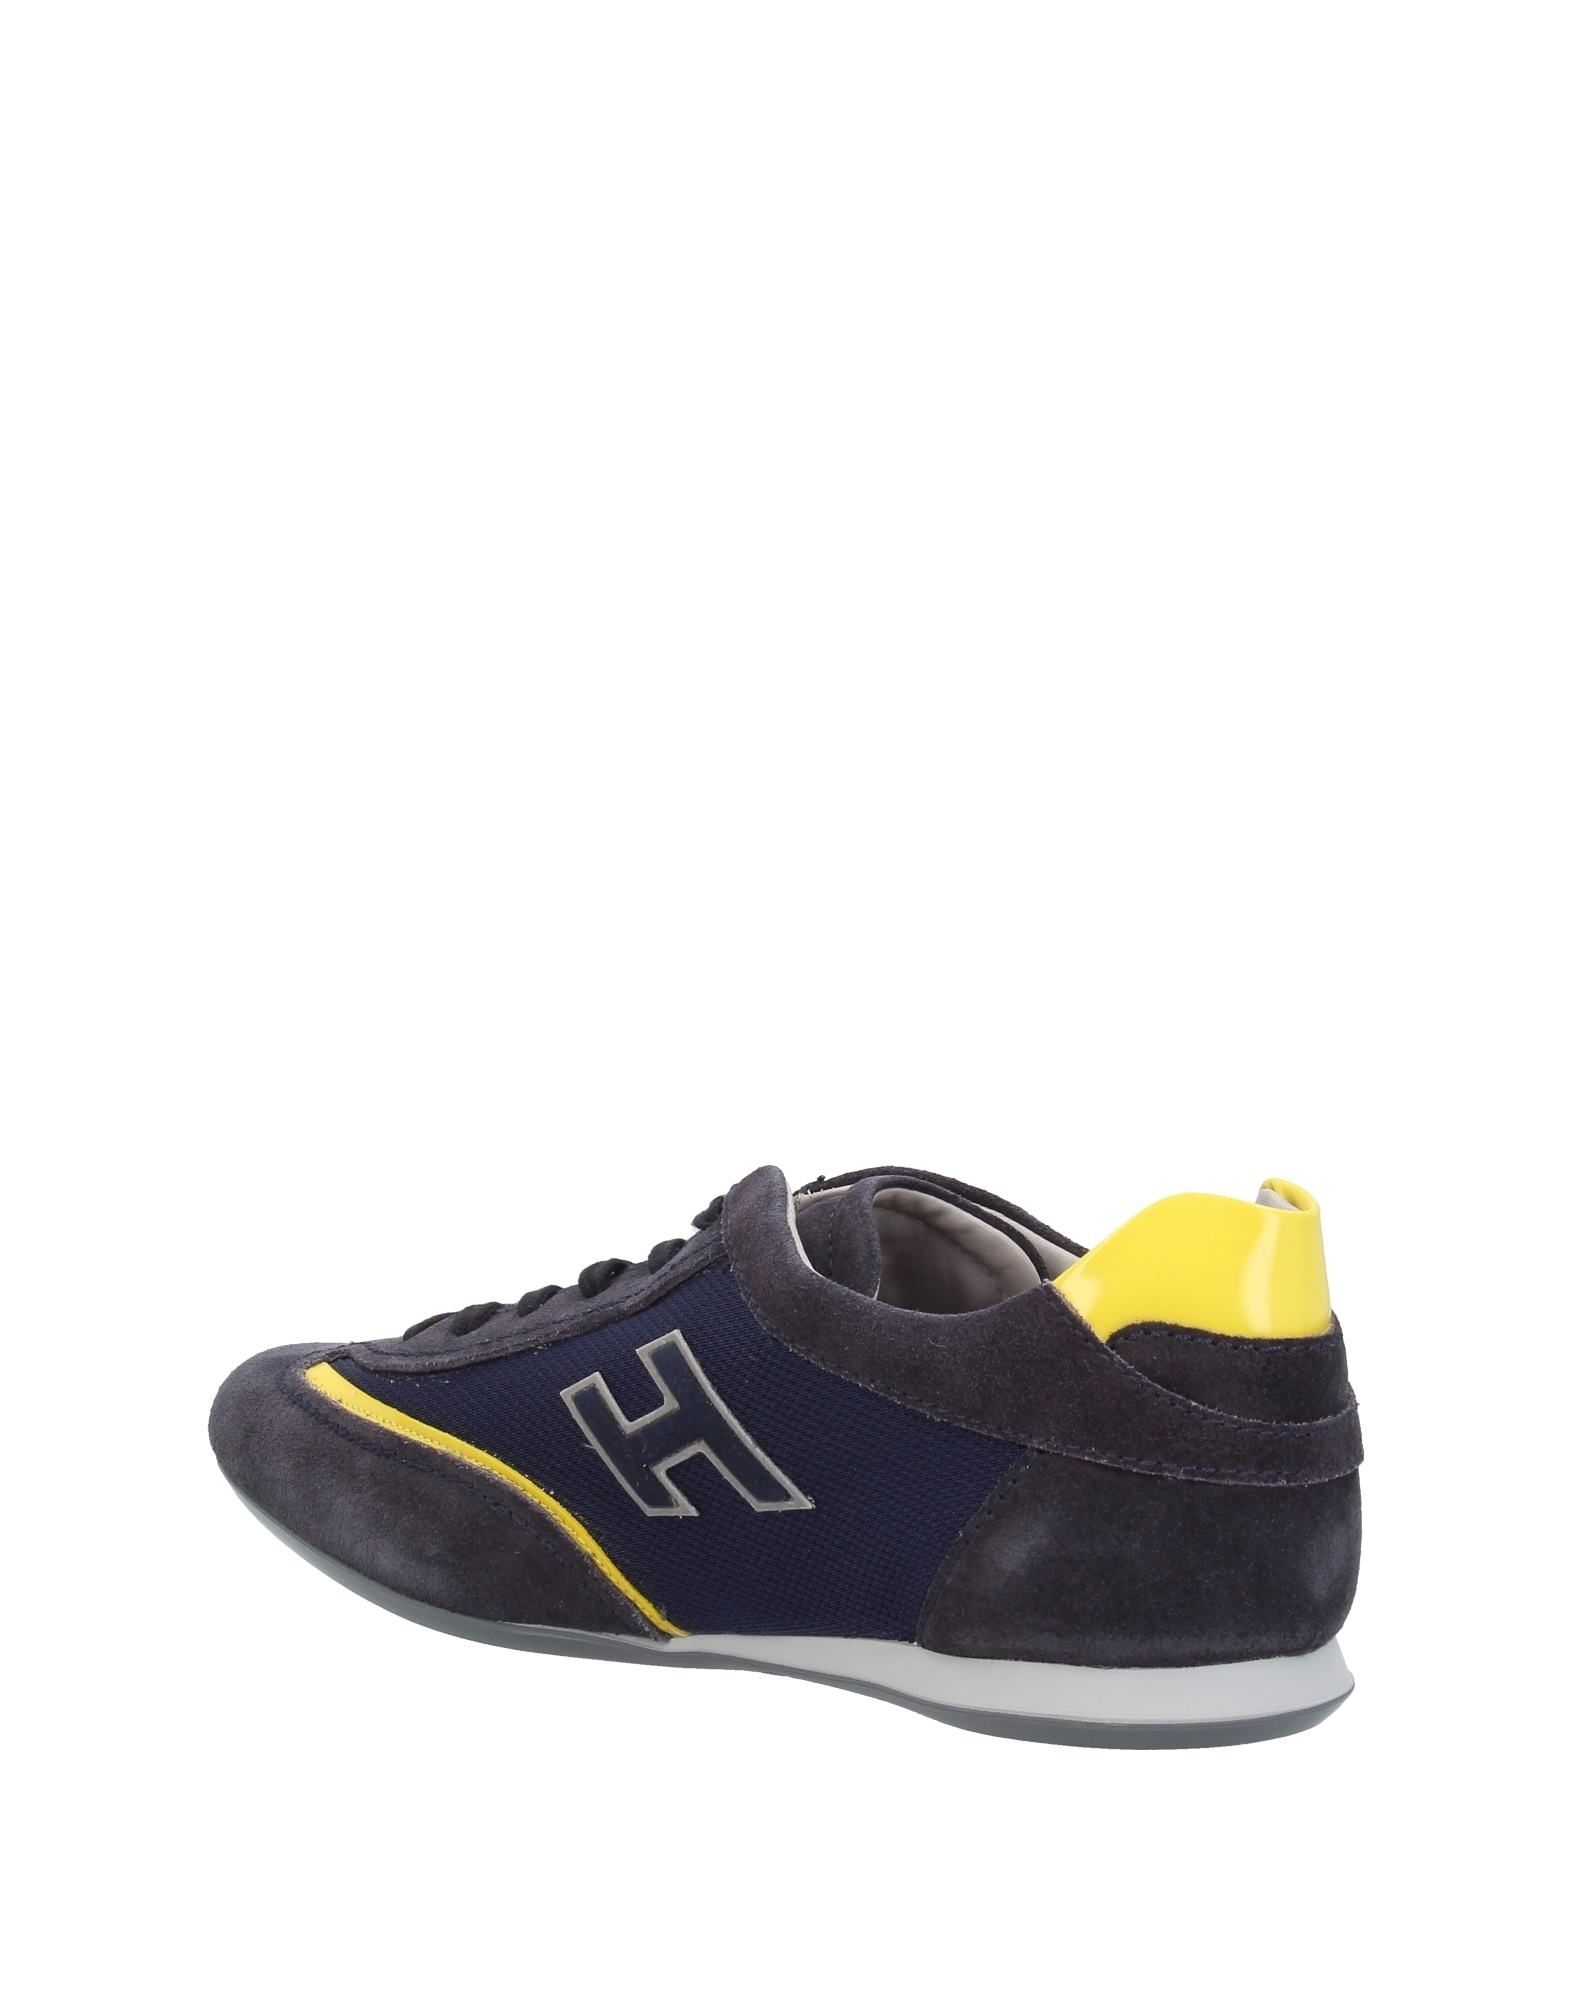 Hogan Hogan Hogan Sneakers - Men Hogan Sneakers online on  United Kingdom - 11396998TK f07244